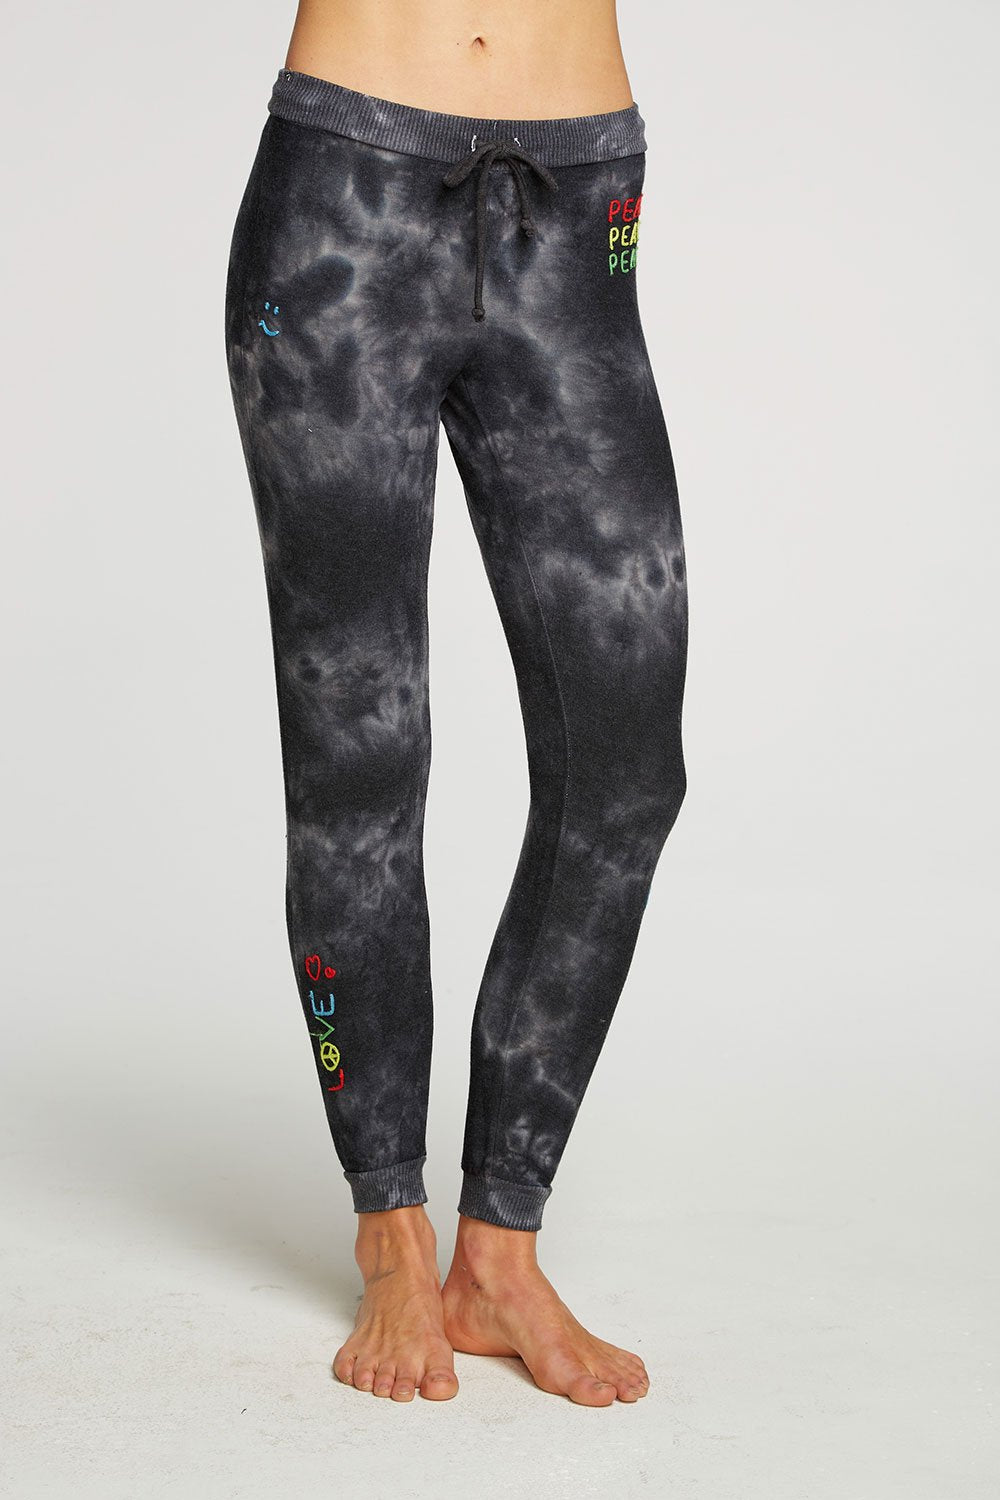 chaser rasta peace pants